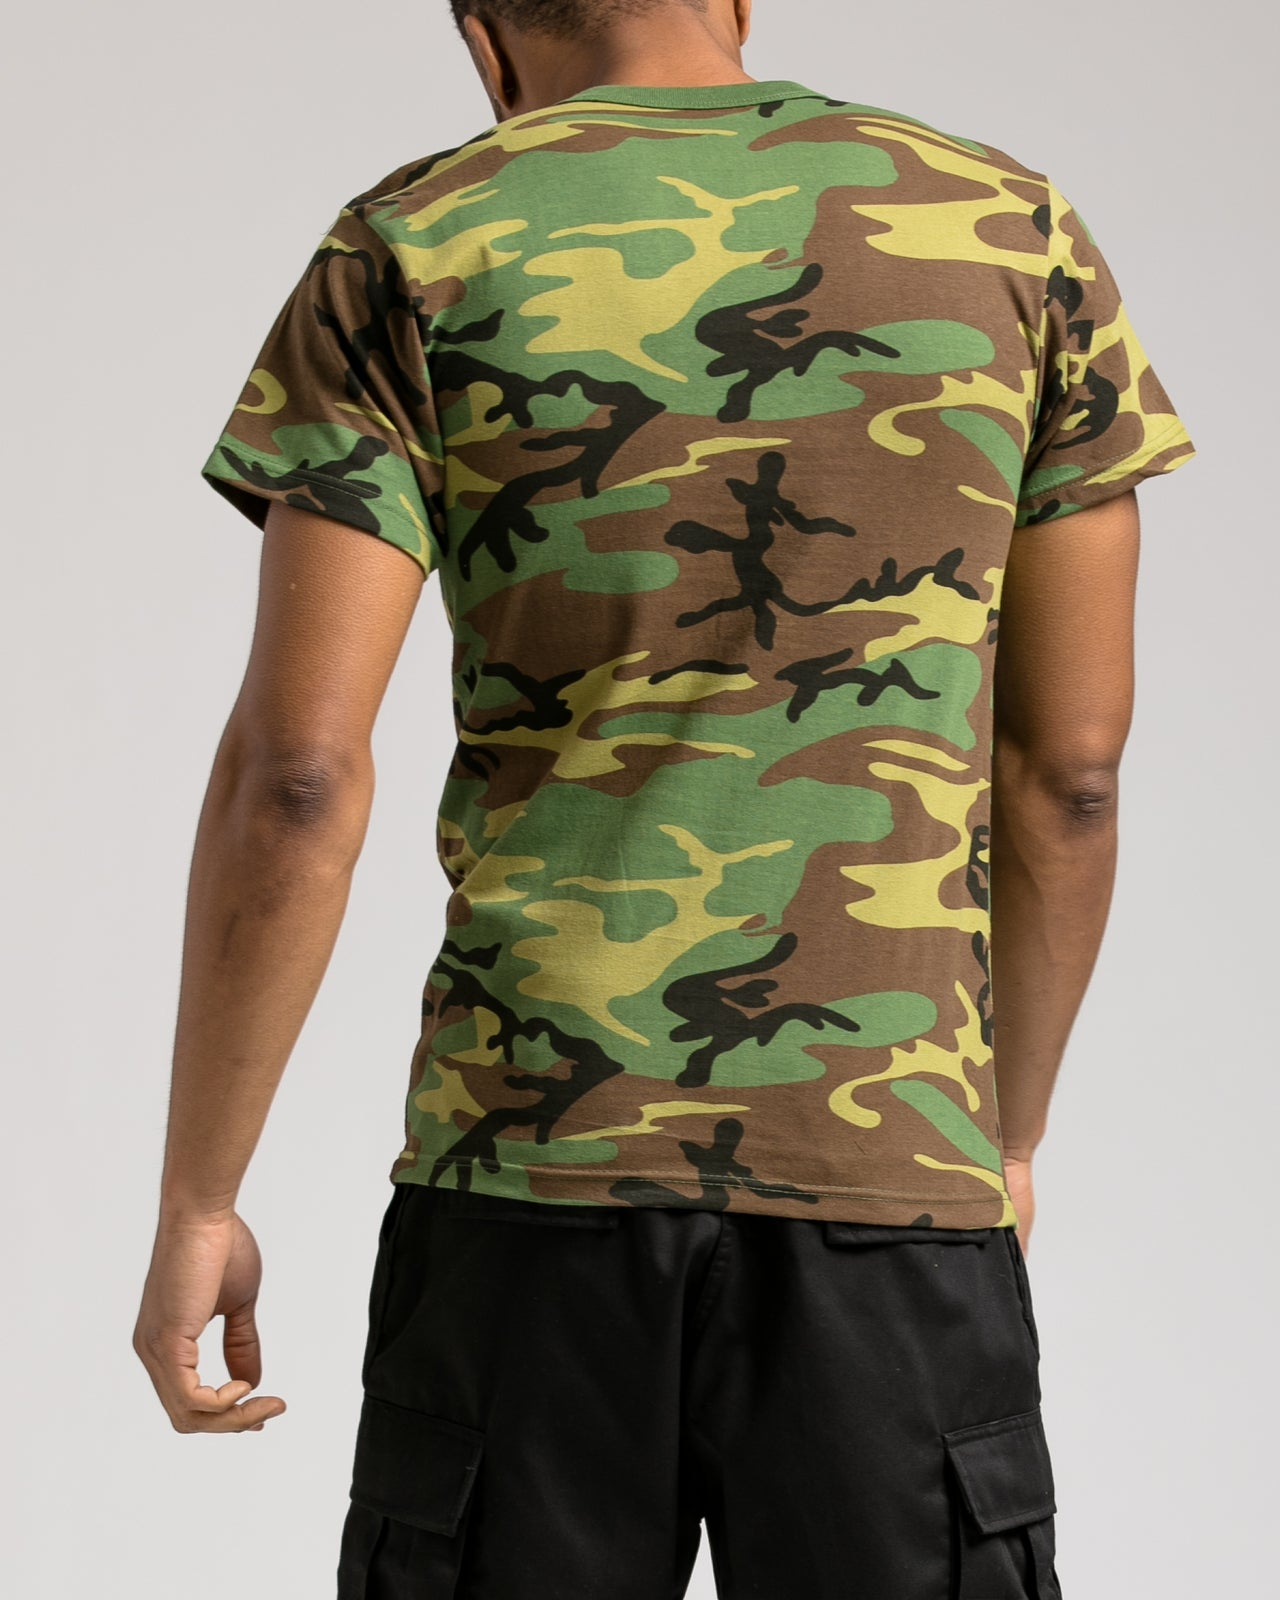 Camo Tee - Color: Woodland Camo | Green